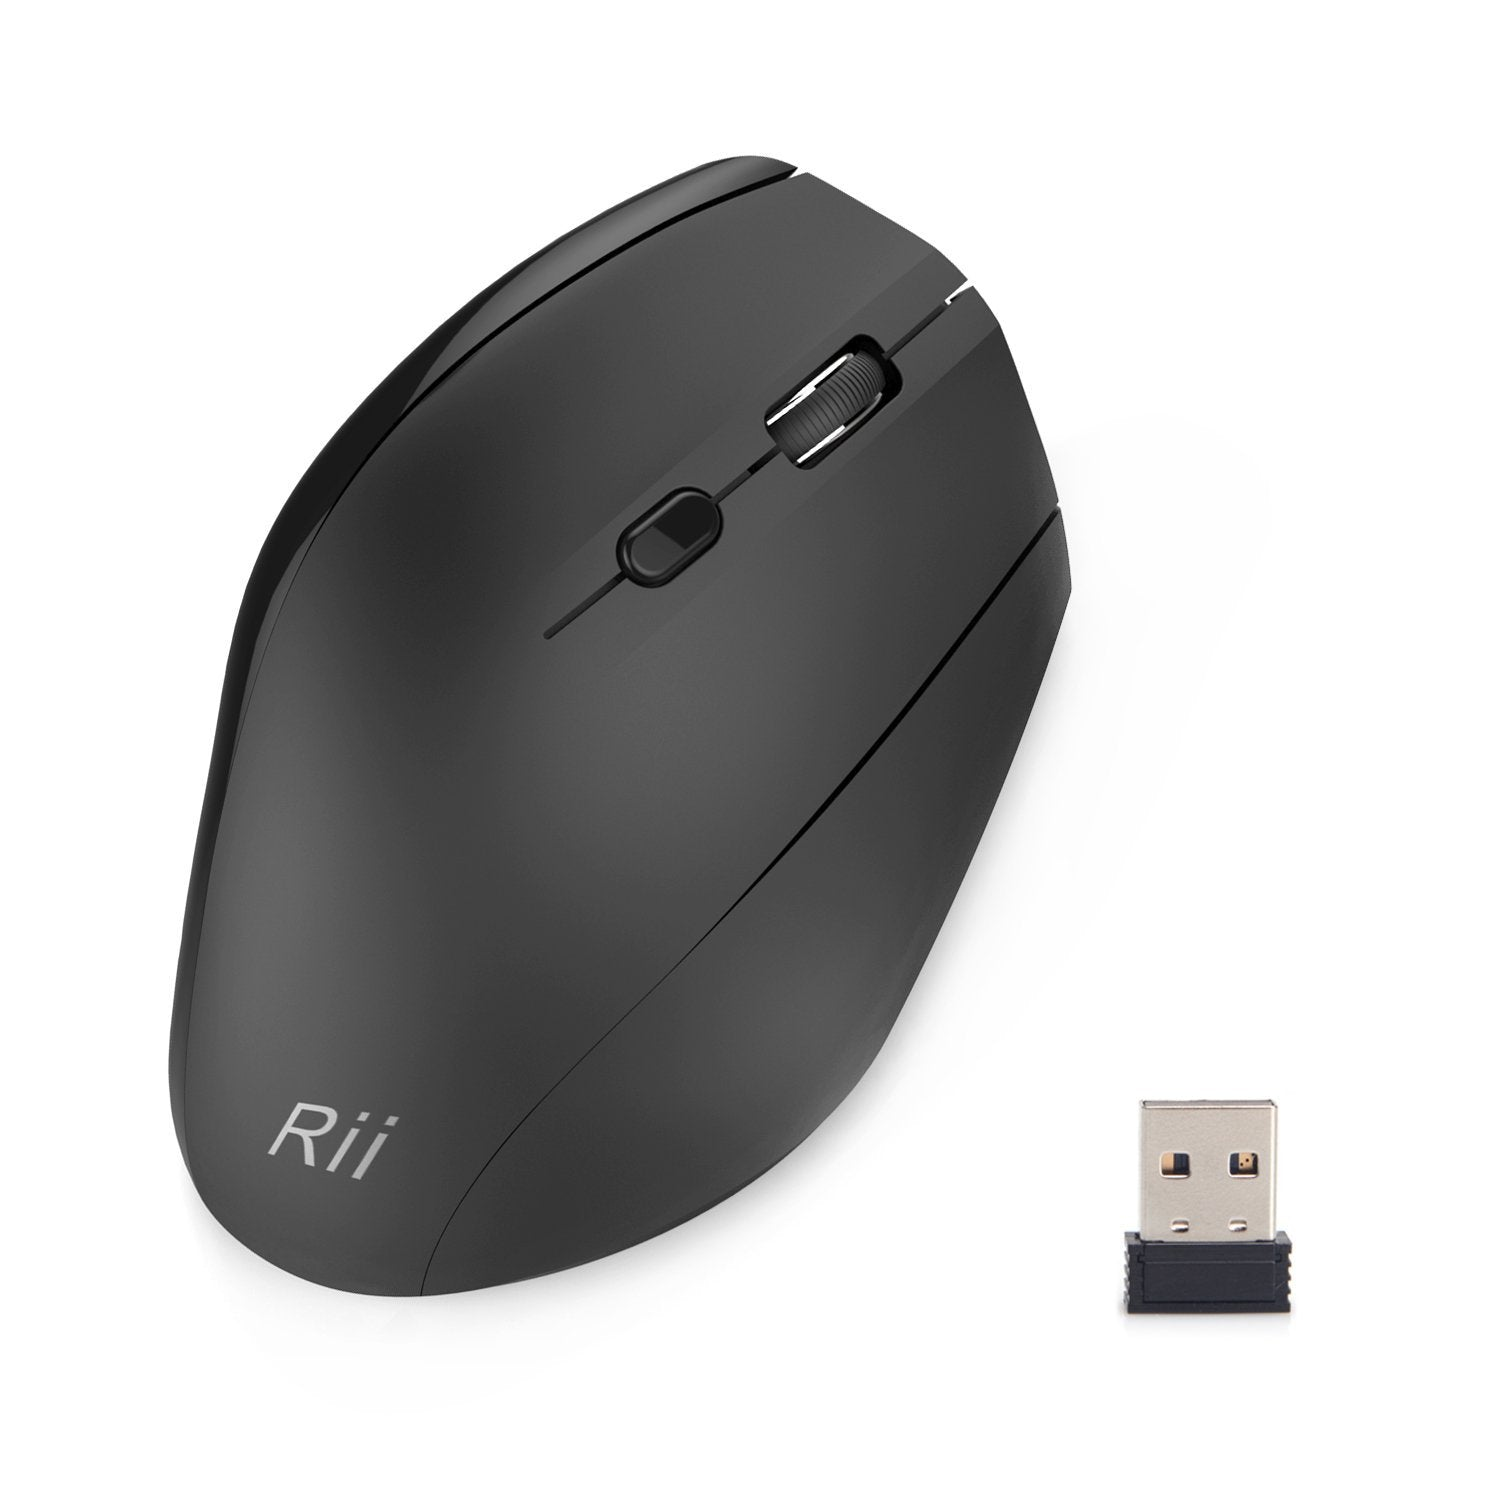 Rii RM300 2.4Ghz Wireless Ergonomic Mouse with 6 Buttons | Monthly Madness